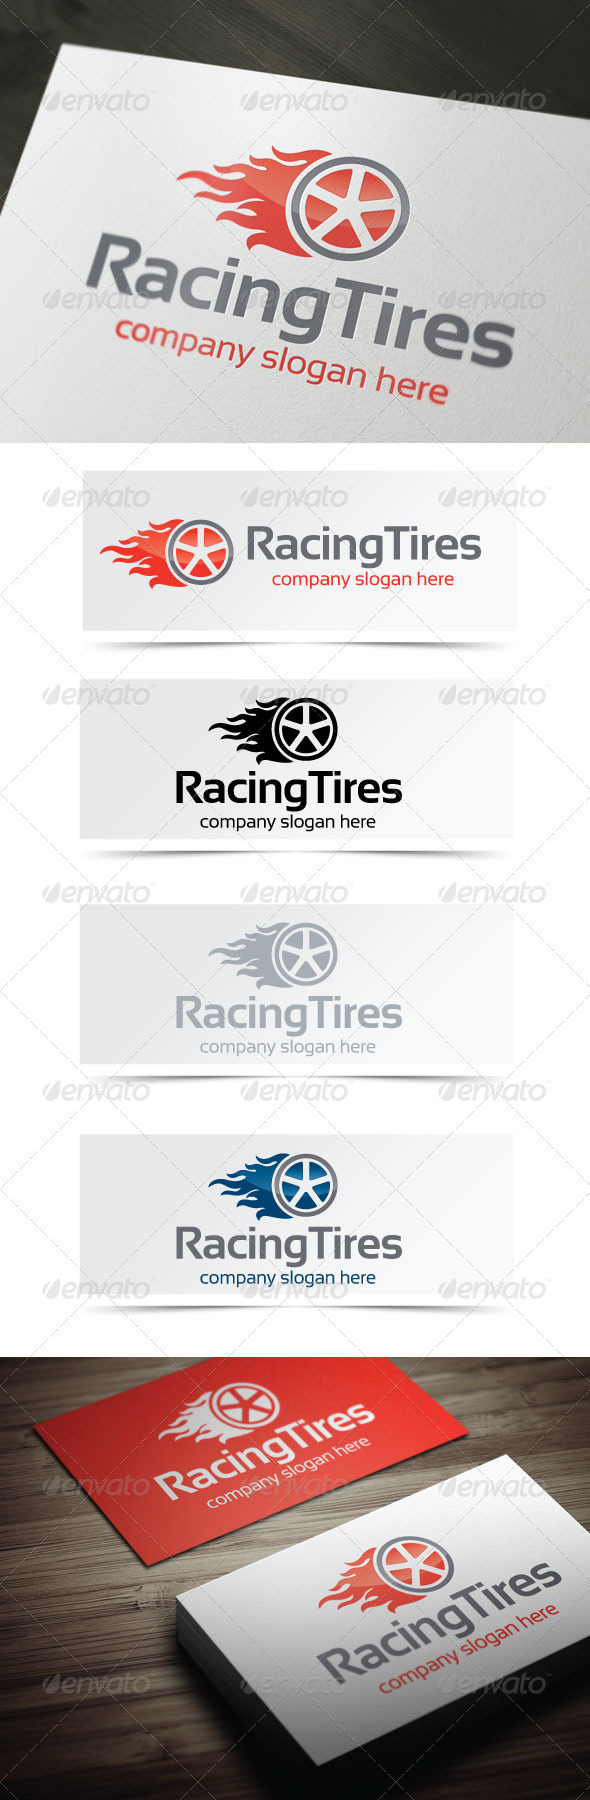 GraphicRiver Racing Tires 4434242